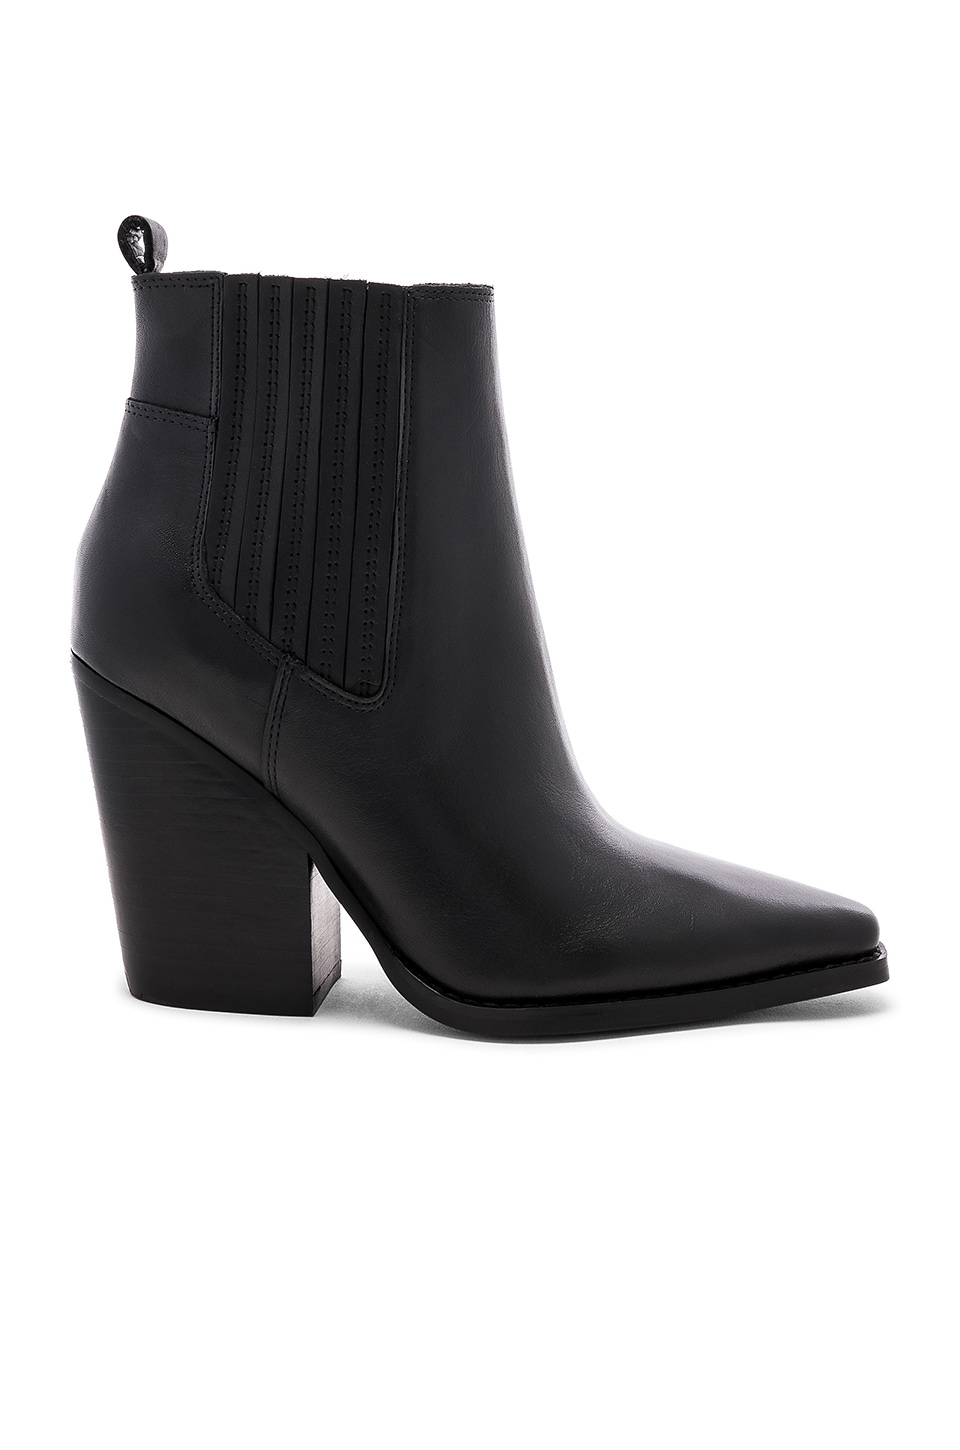 KENDALL + KYLIE Colt Bootie in Black Regal Matte Leather